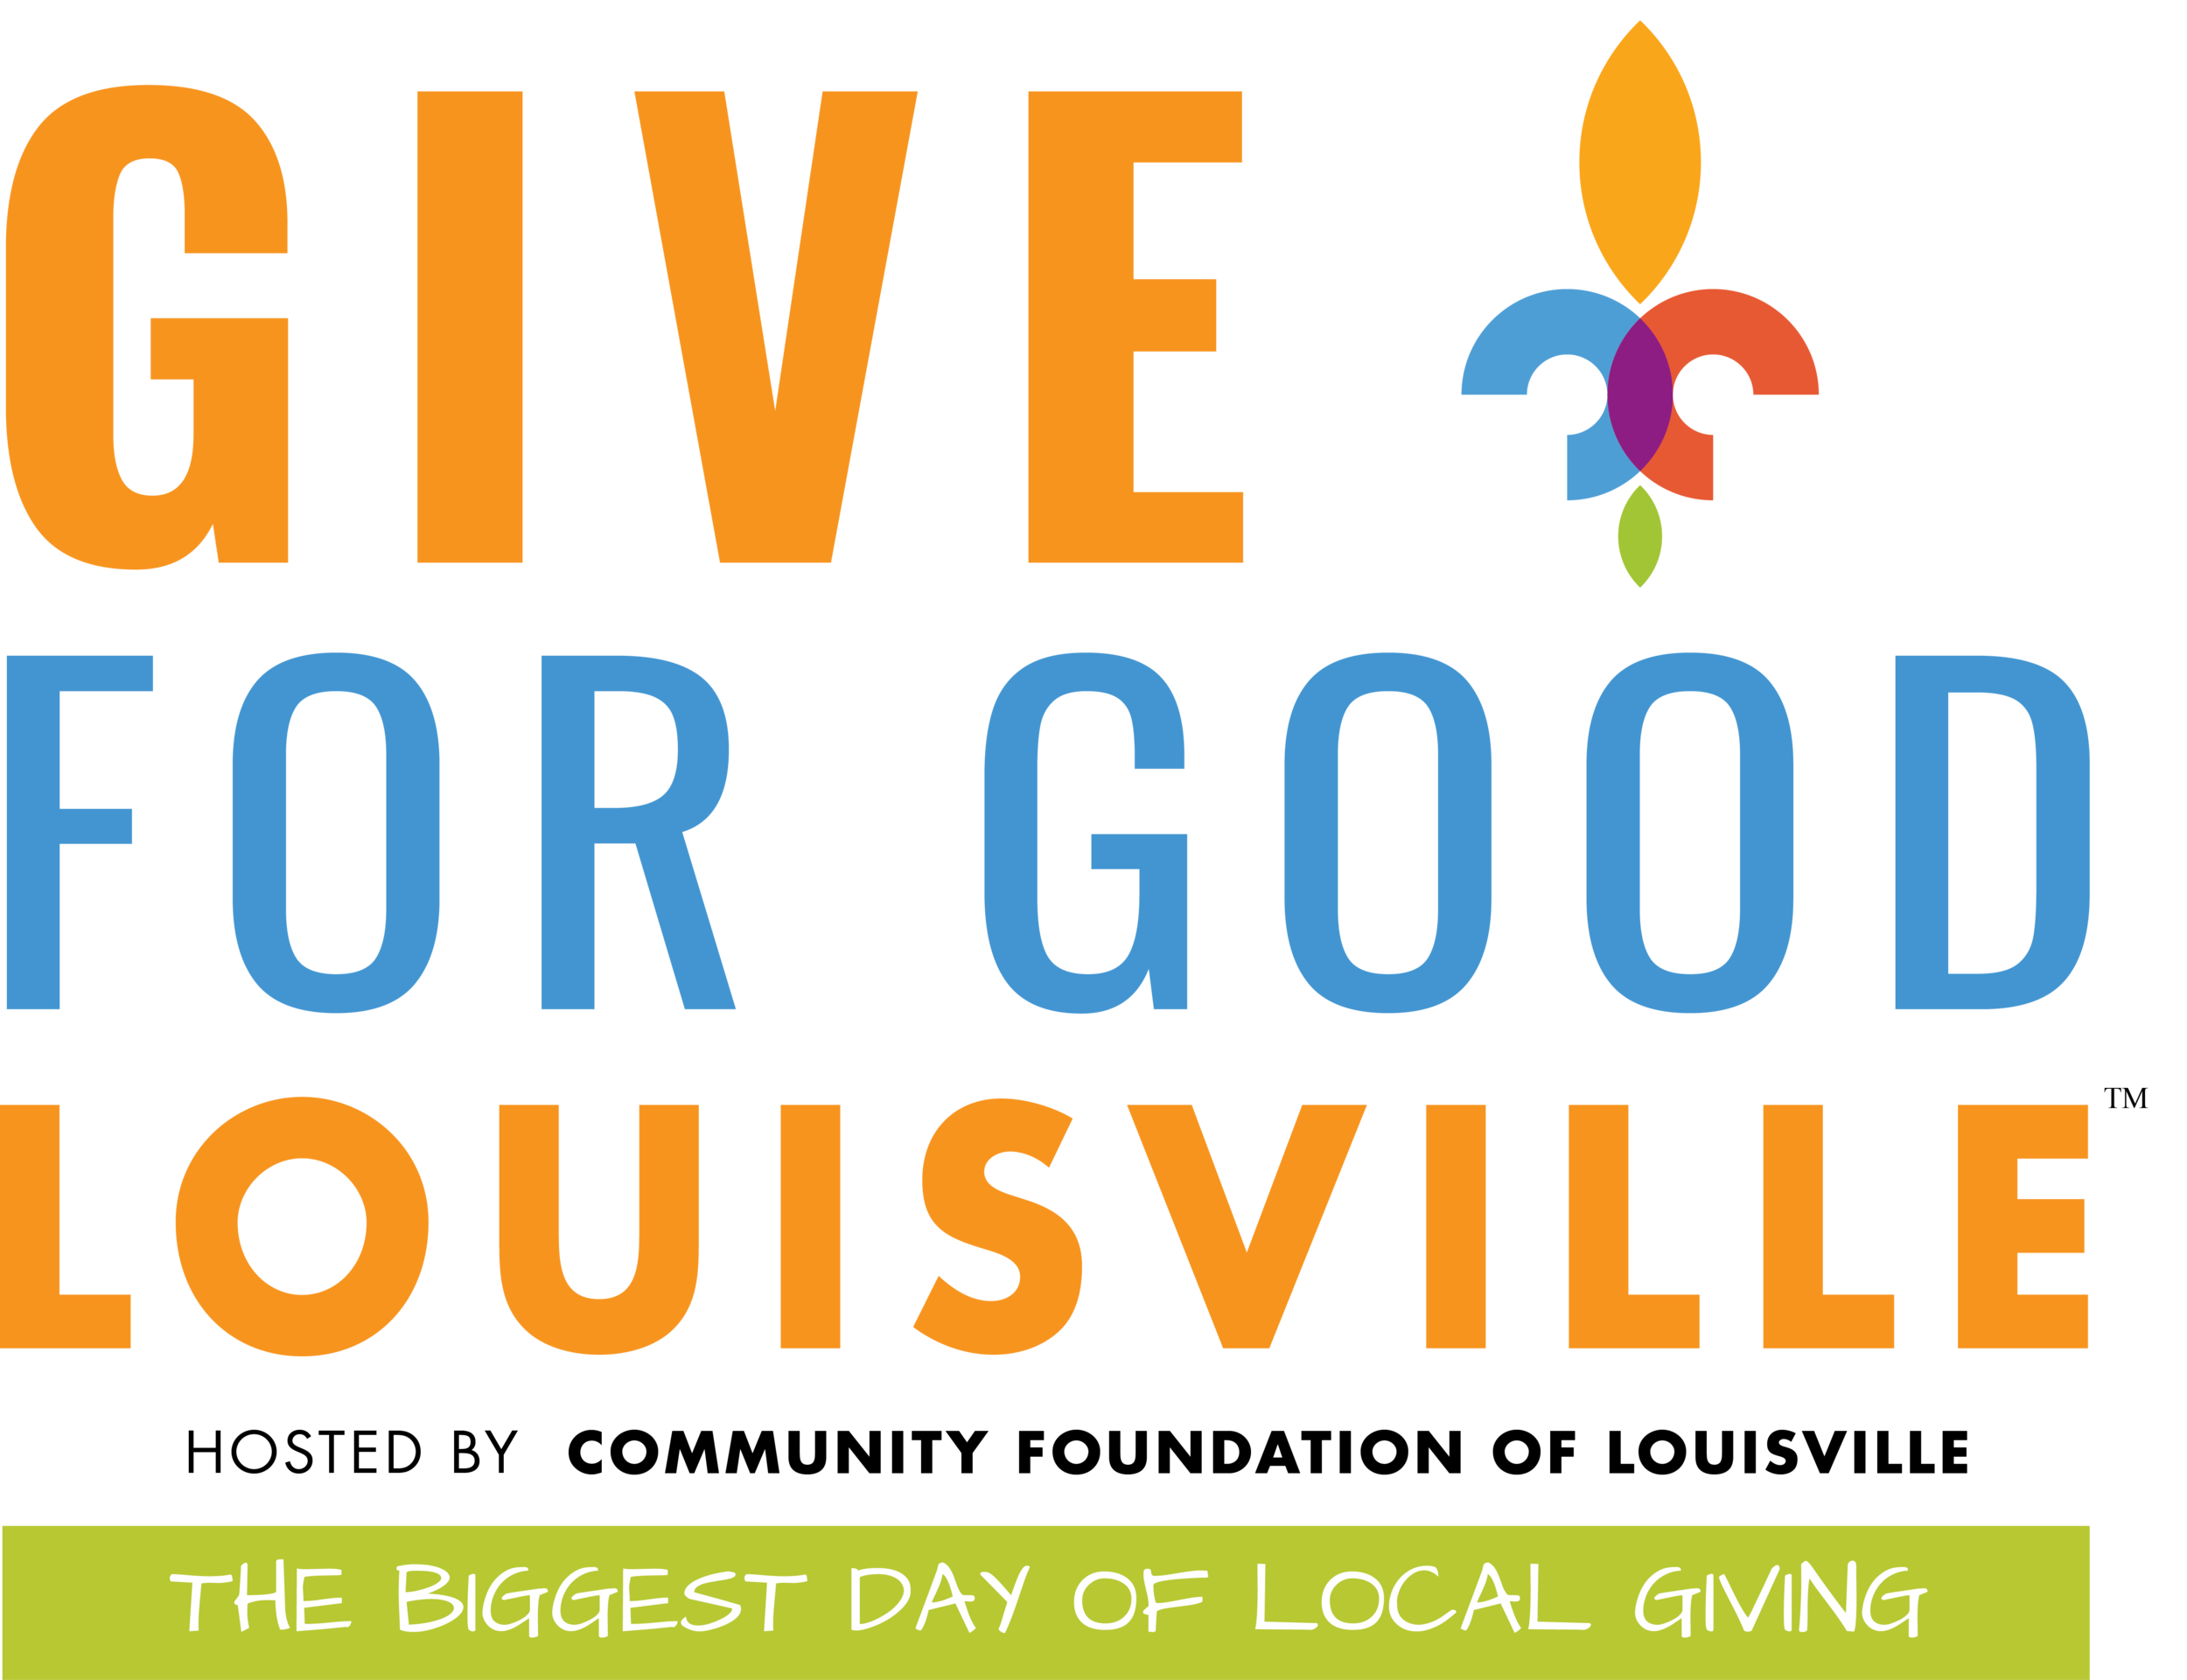 We are so excited to be part of  #GiveForGoodLou  with the  Community Foundation of Louisville !  Please donate online at  https://www.giveforgoodlouisville.org/organizations/louisville-visual-art  on September 14, 2017!    About Give For Good Louisville:   The biggest day of local giving is going to be even better in 2017! After the unprecedented success of over 600 local nonprofits raising $4.3 million in 24 hours during the online giving day last September, we are excited to announce that Give Local Louisville is now Give For Good Louisville.  #GiveForGoodLou lets us take a day to celebrate our generous philanthropic community. With your help, we can make an impact and help create a community where people and place thrive. Join us in being a force for good!